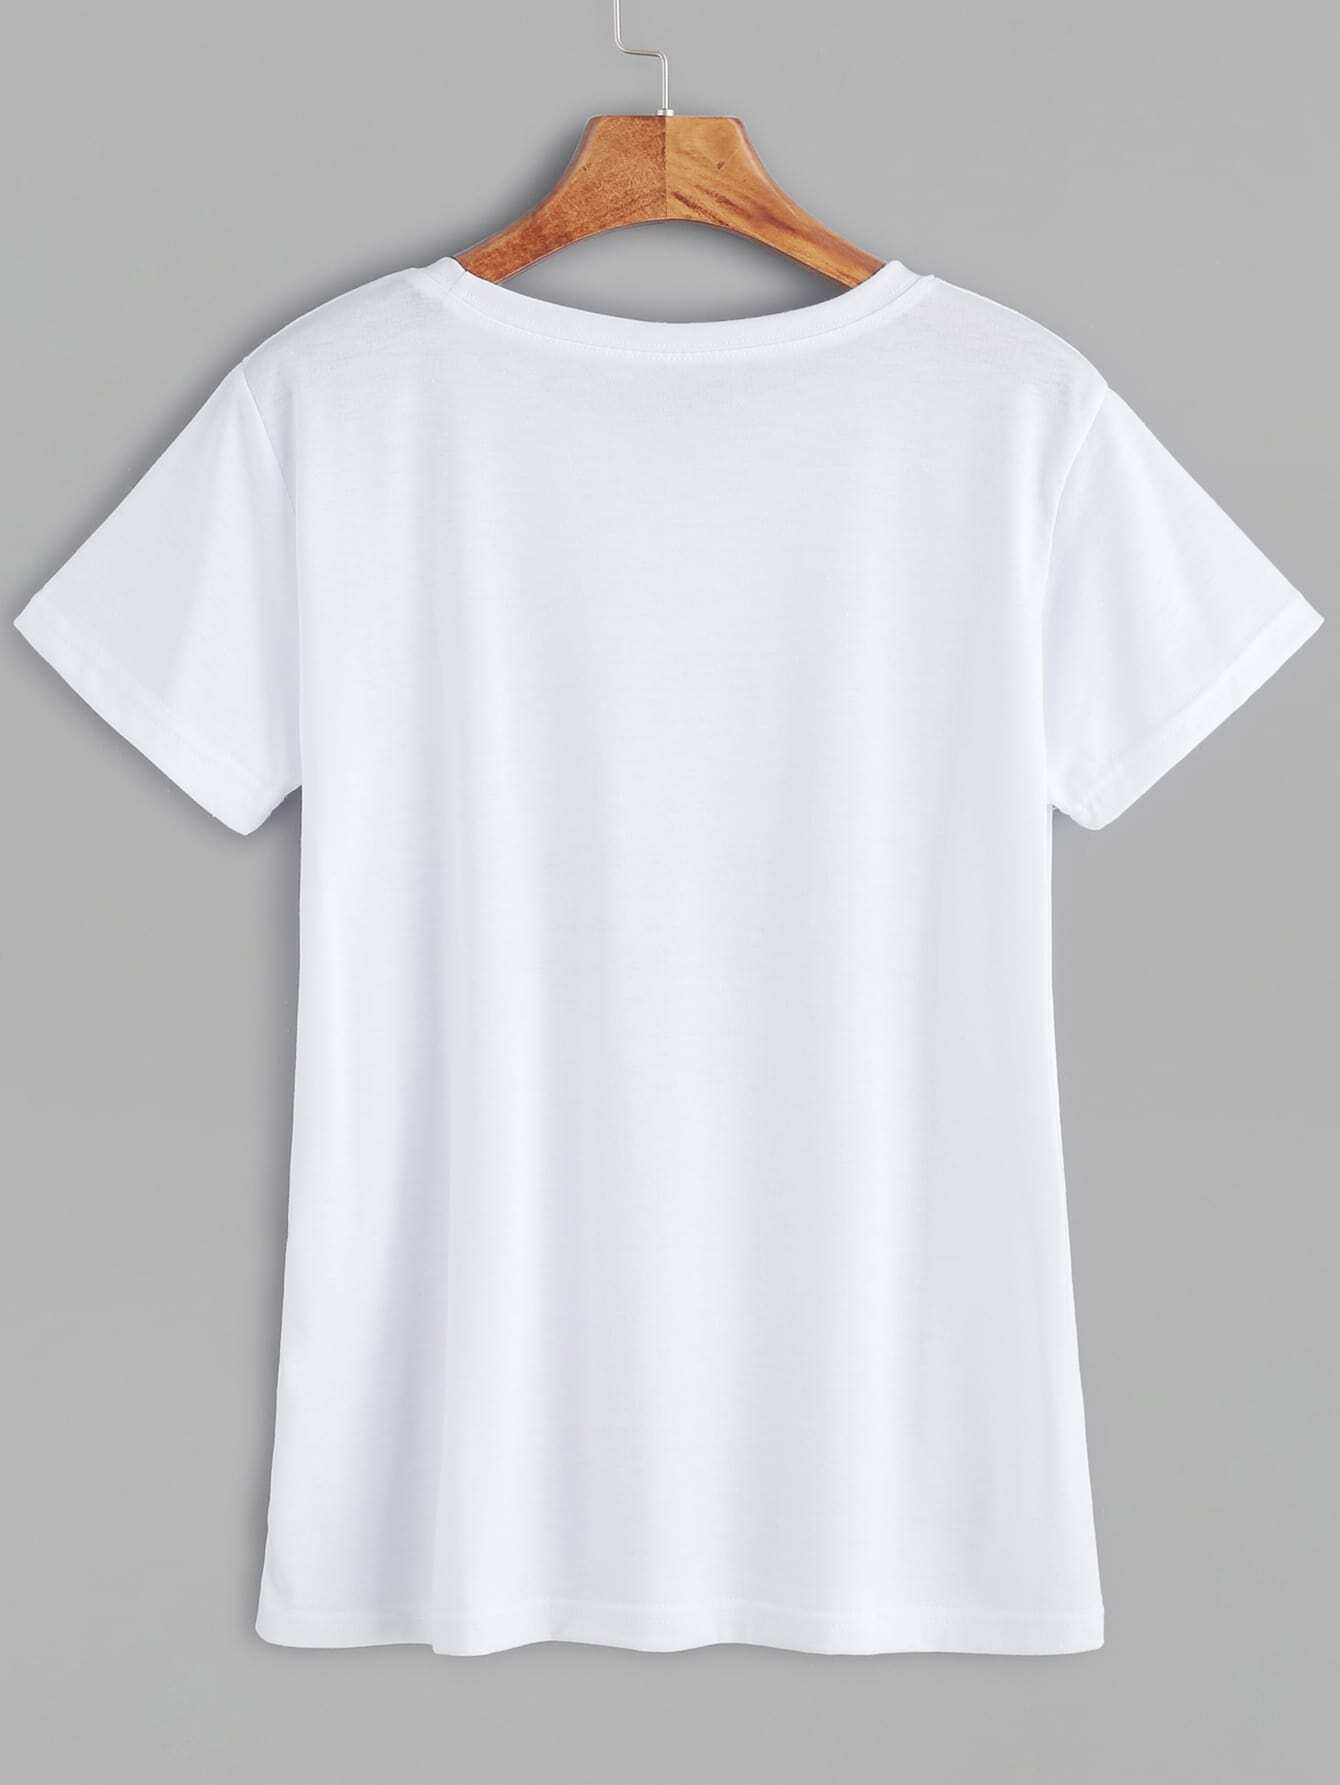 8af592a1c7 White Hand Print Casual T-shirt EmmaCloth-Women Fast Fashion Online